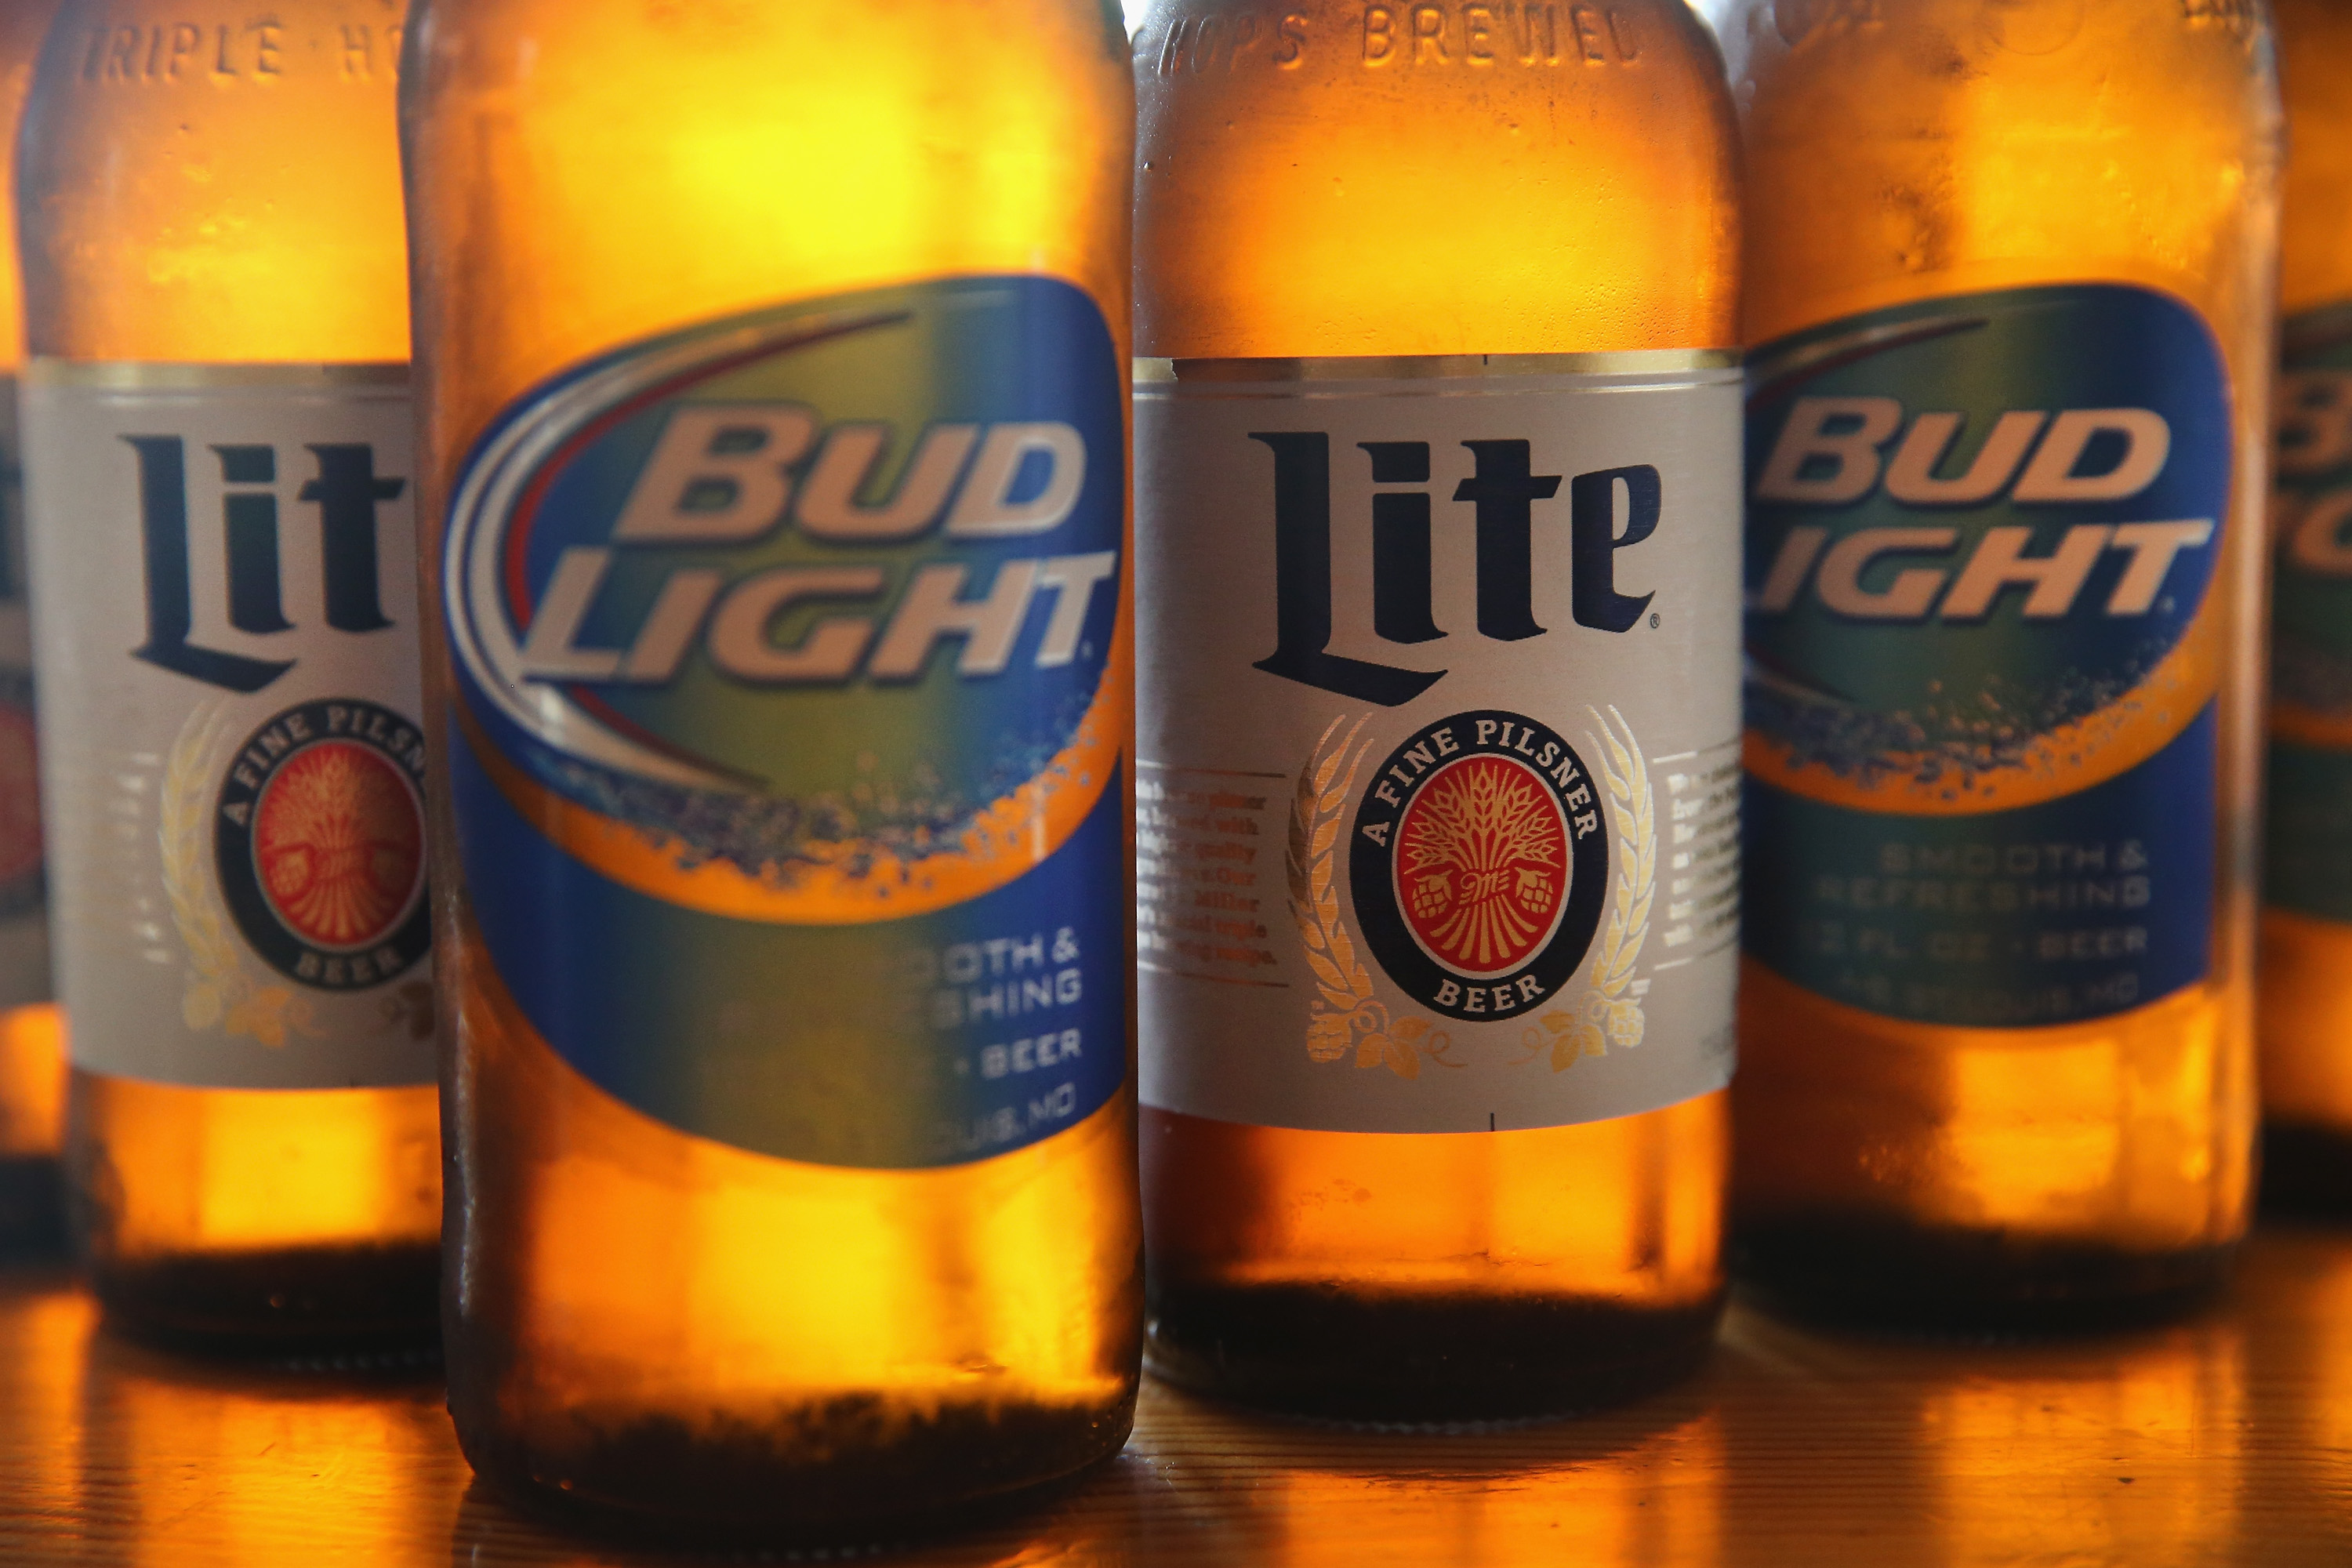 In this photo illustration, bottles of Miller Lite and Bud Light beer that are products of SABMiller and Anheuser-Busch InBev (respectively) are shown on September 15, 2014 in Chicago. Illinois.